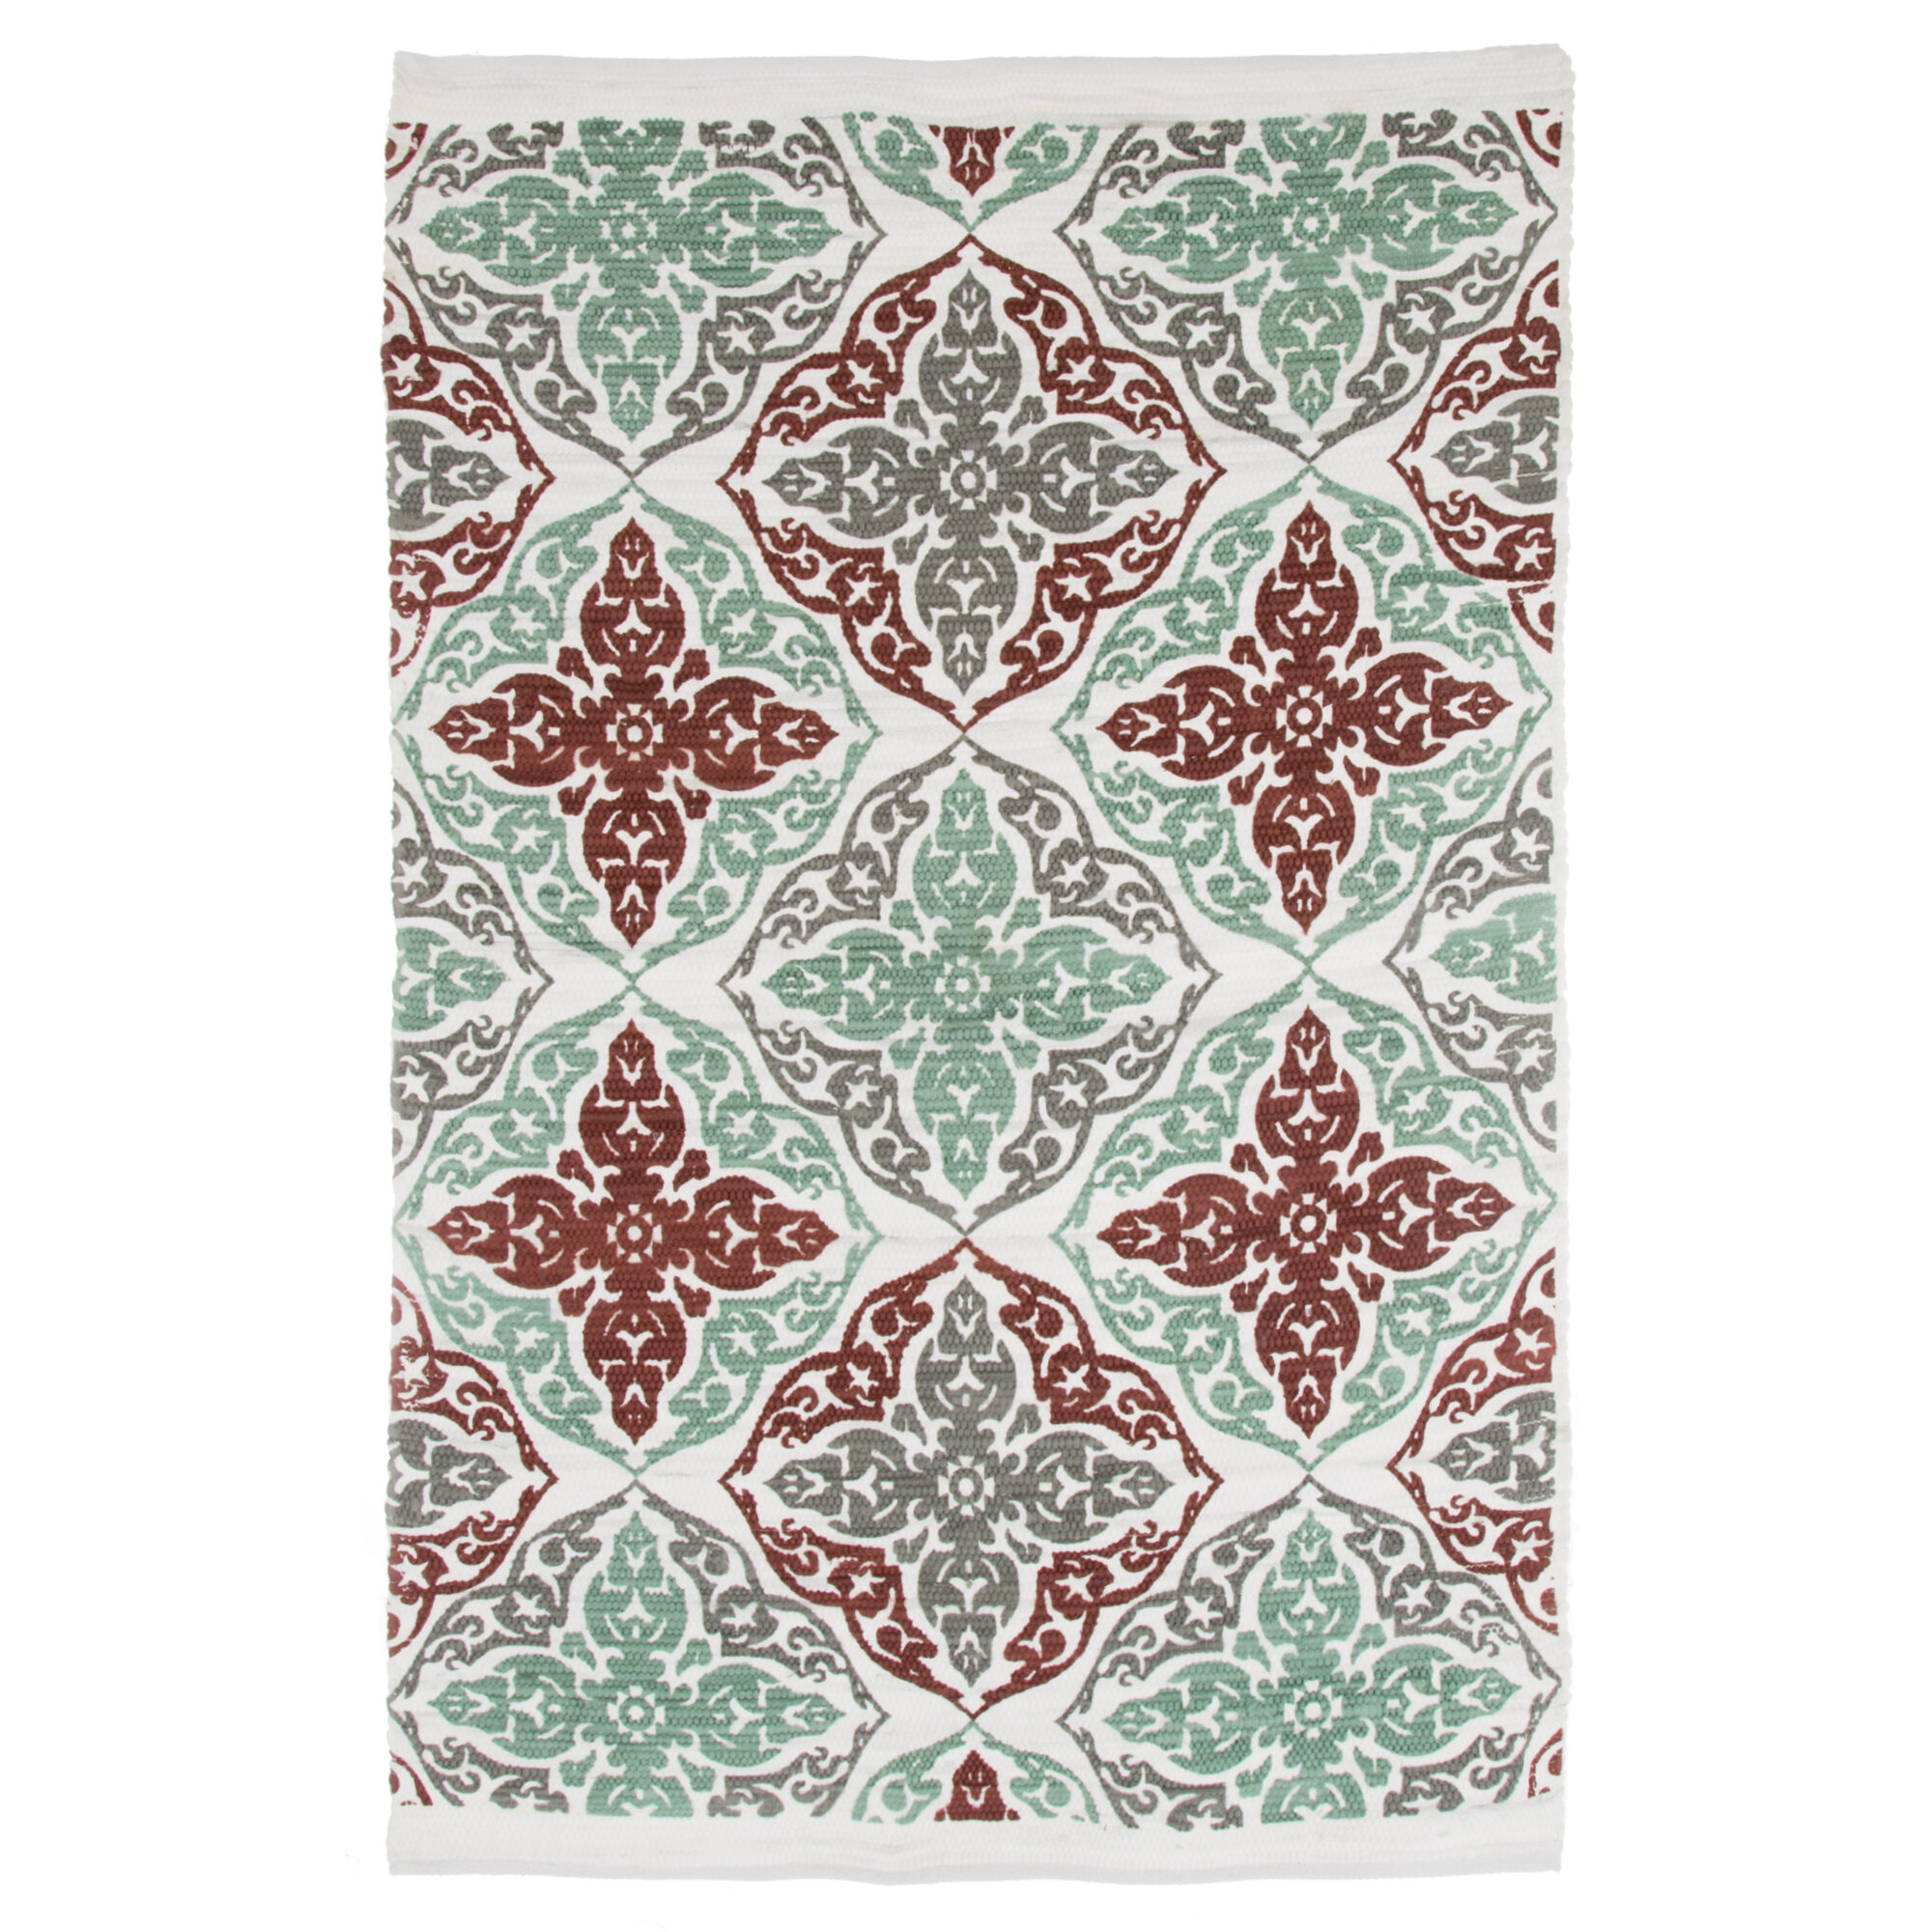 Picture of: Ebern Designs Roche Damask Motif Accent Hand Woven Teal Area Rug Wayfair